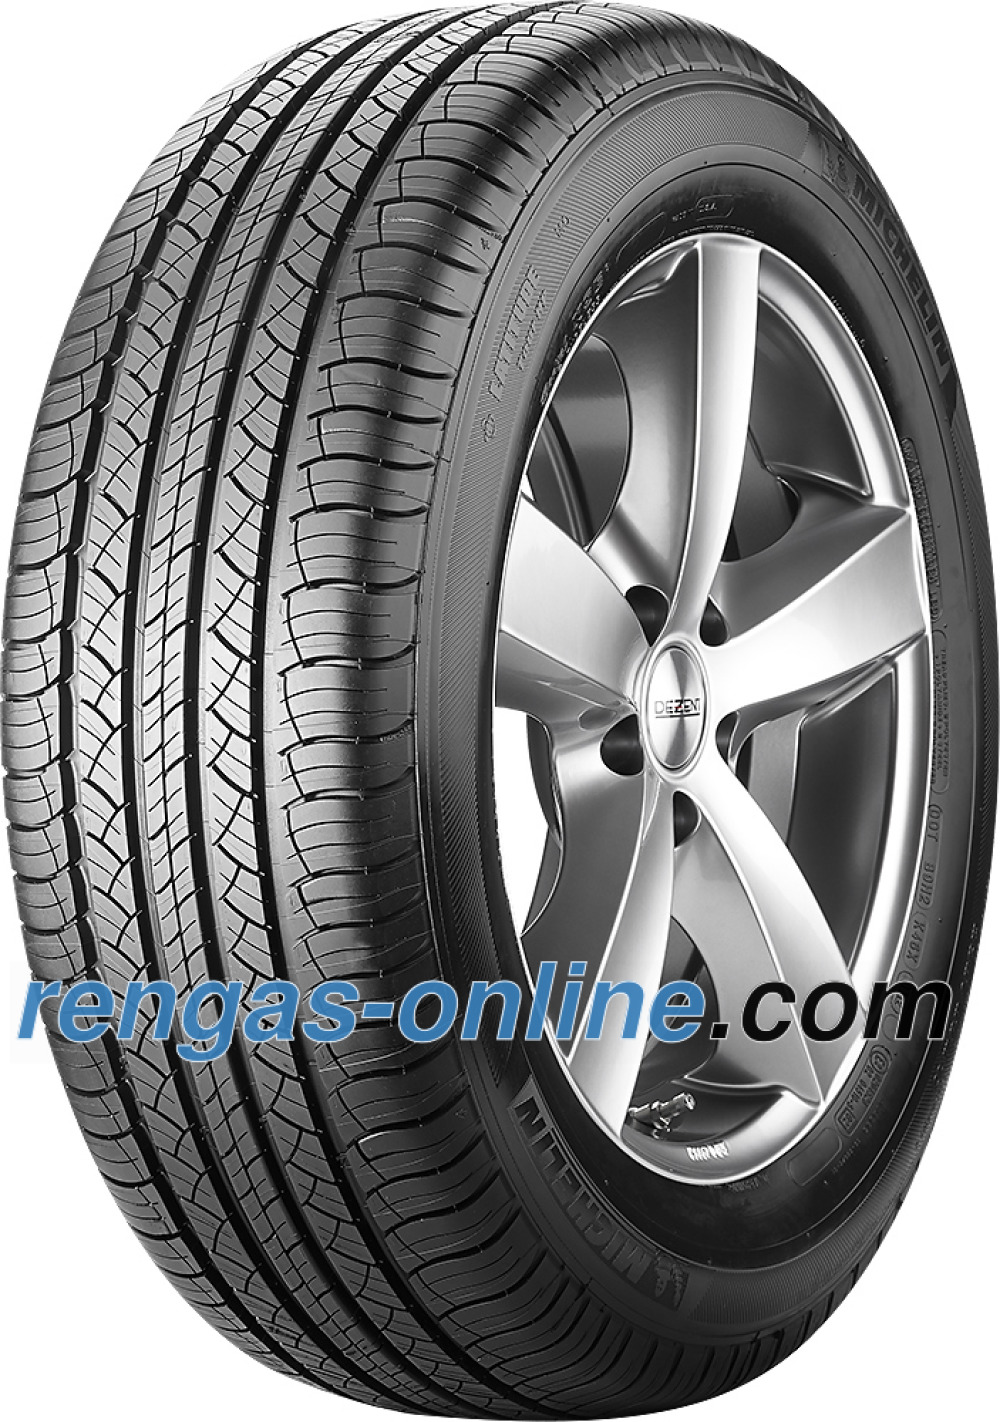 michelin-latitude-tour-hp-25555-r19-111v-xl-grnx